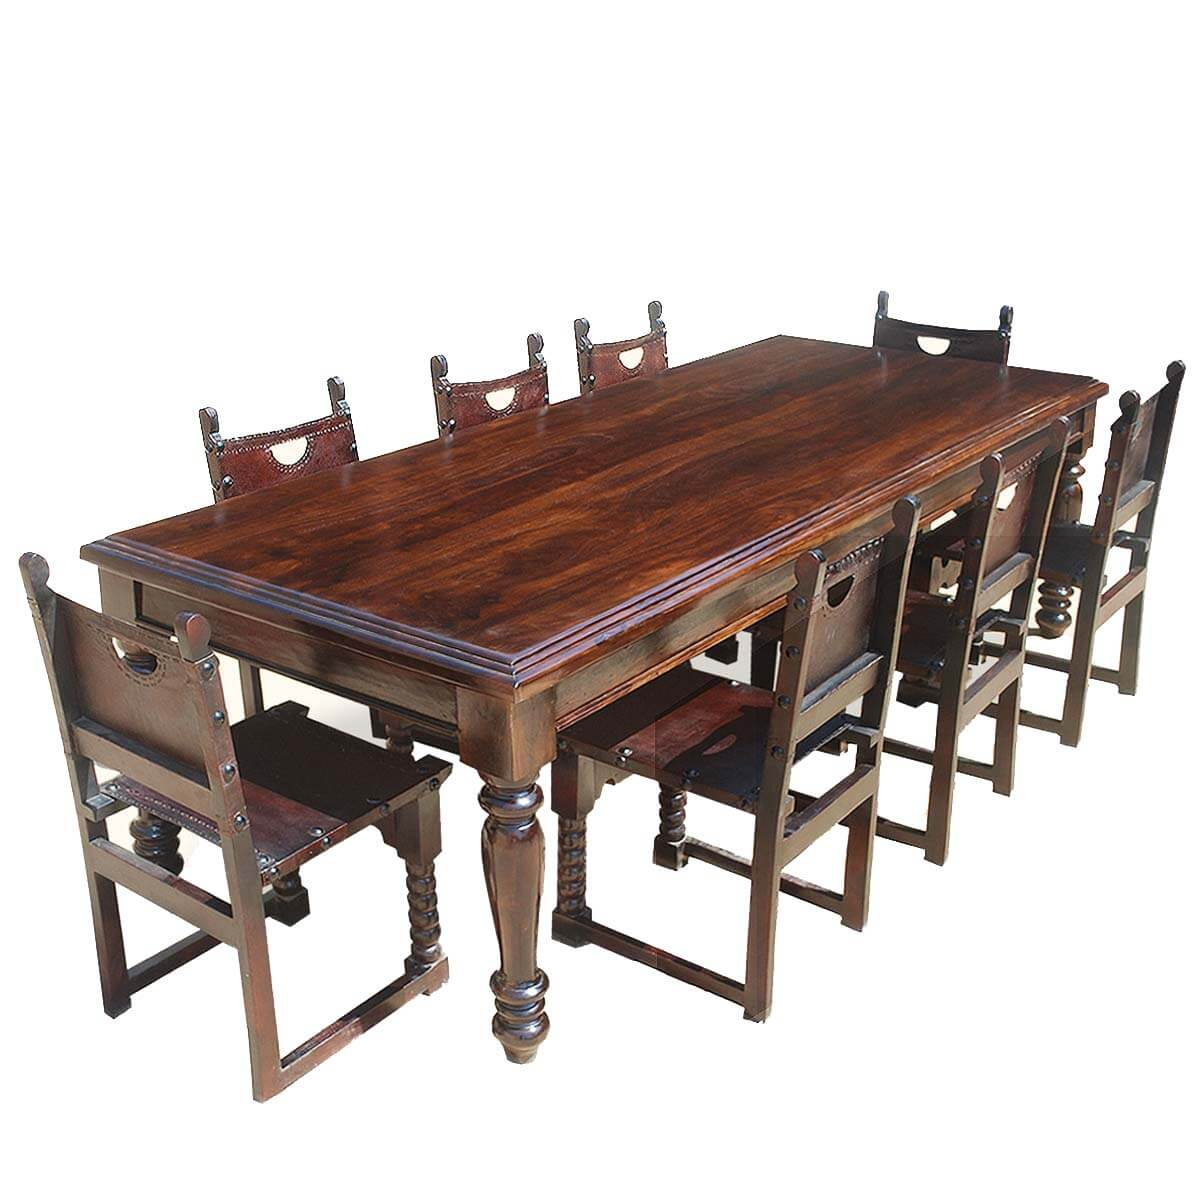 Large Rustic Solid Wood Dining Room Table w 8 Leather  : 4876 from www.sierralivingconcepts.com size 1200 x 1200 jpeg 140kB